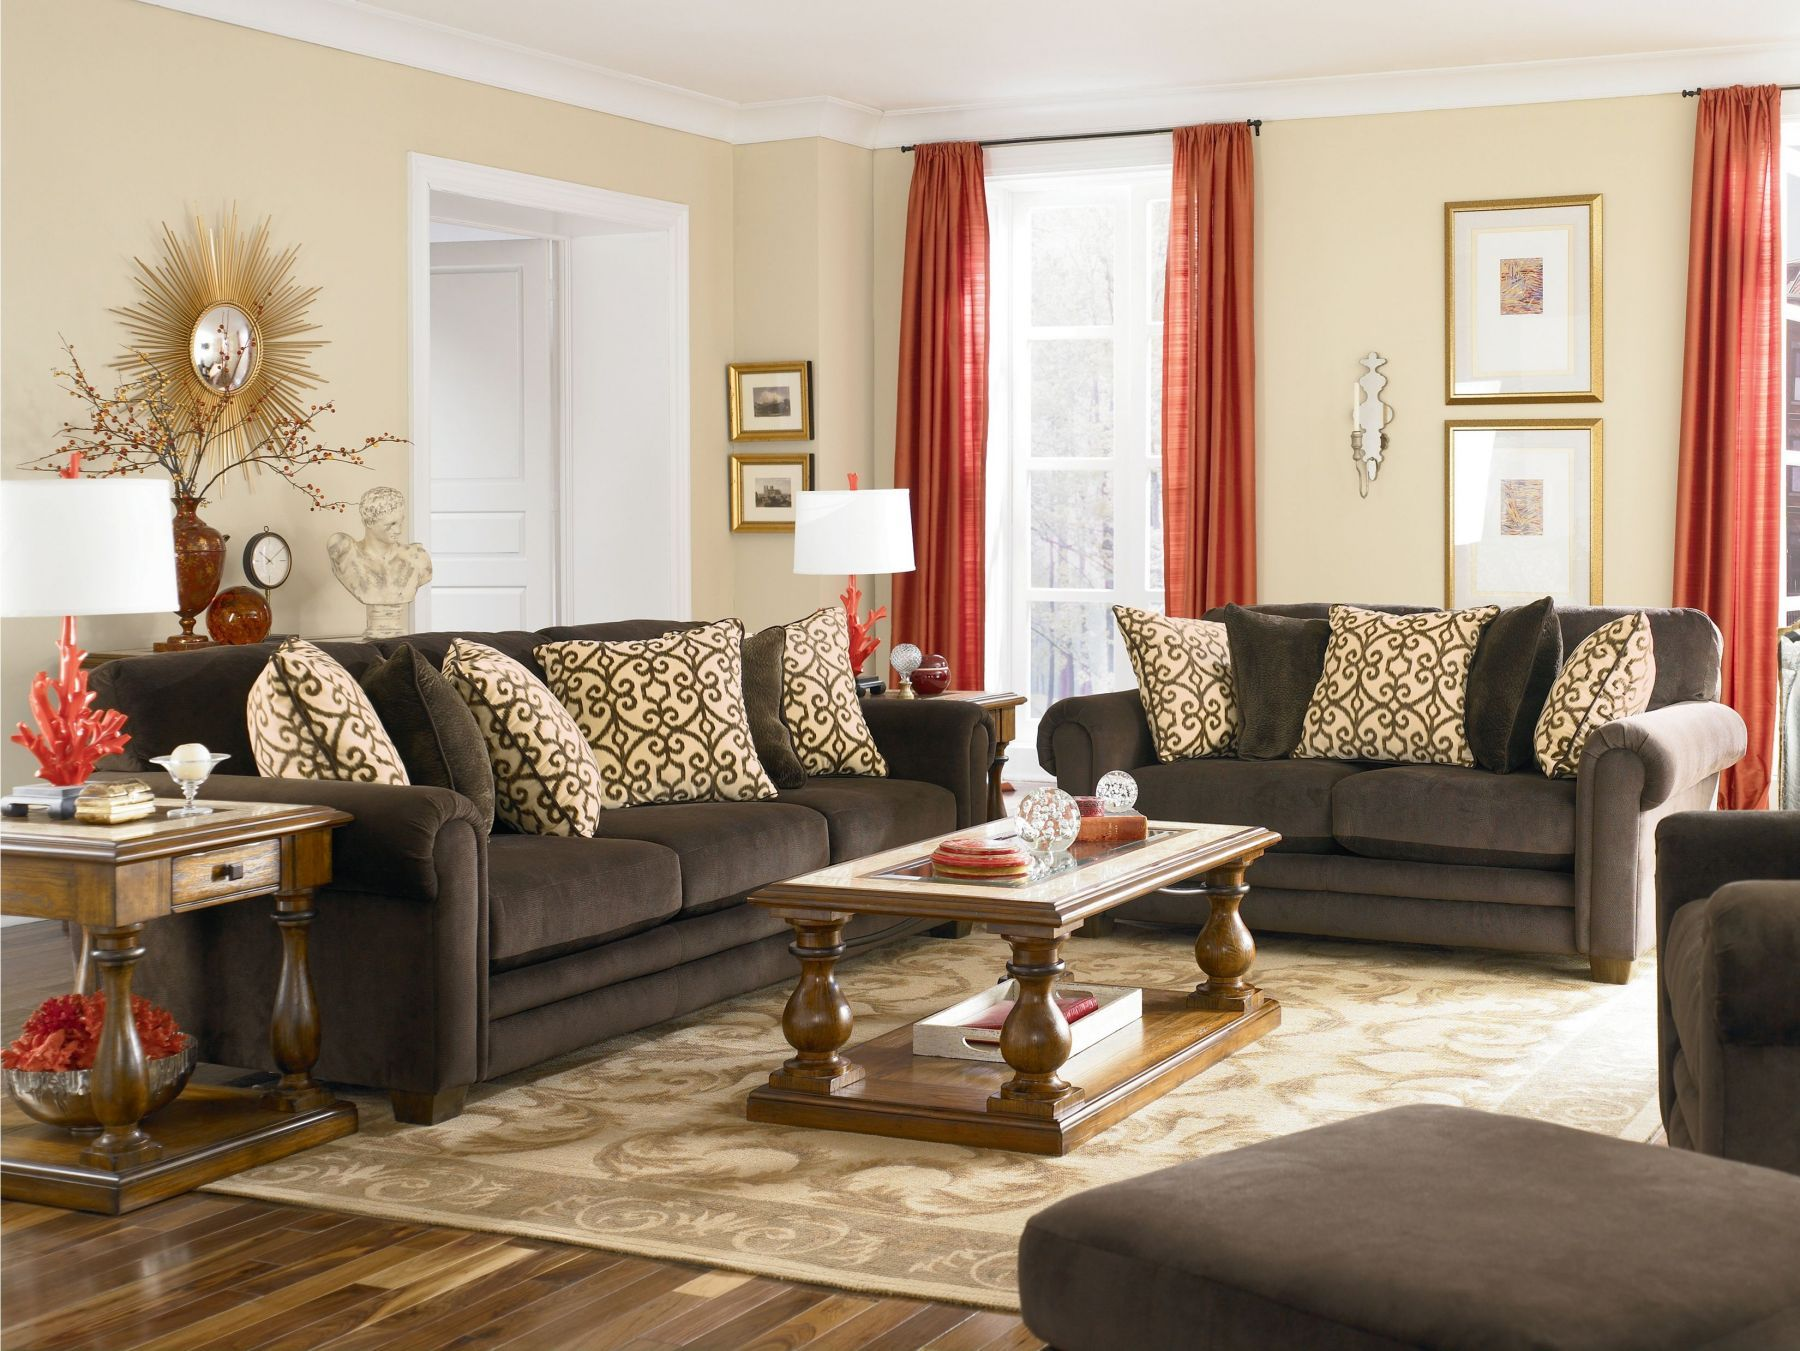 Swell Lounge Interior Design Lounge Living Room Ideas Brown Sofa Gamerscity Chair Design For Home Gamerscityorg